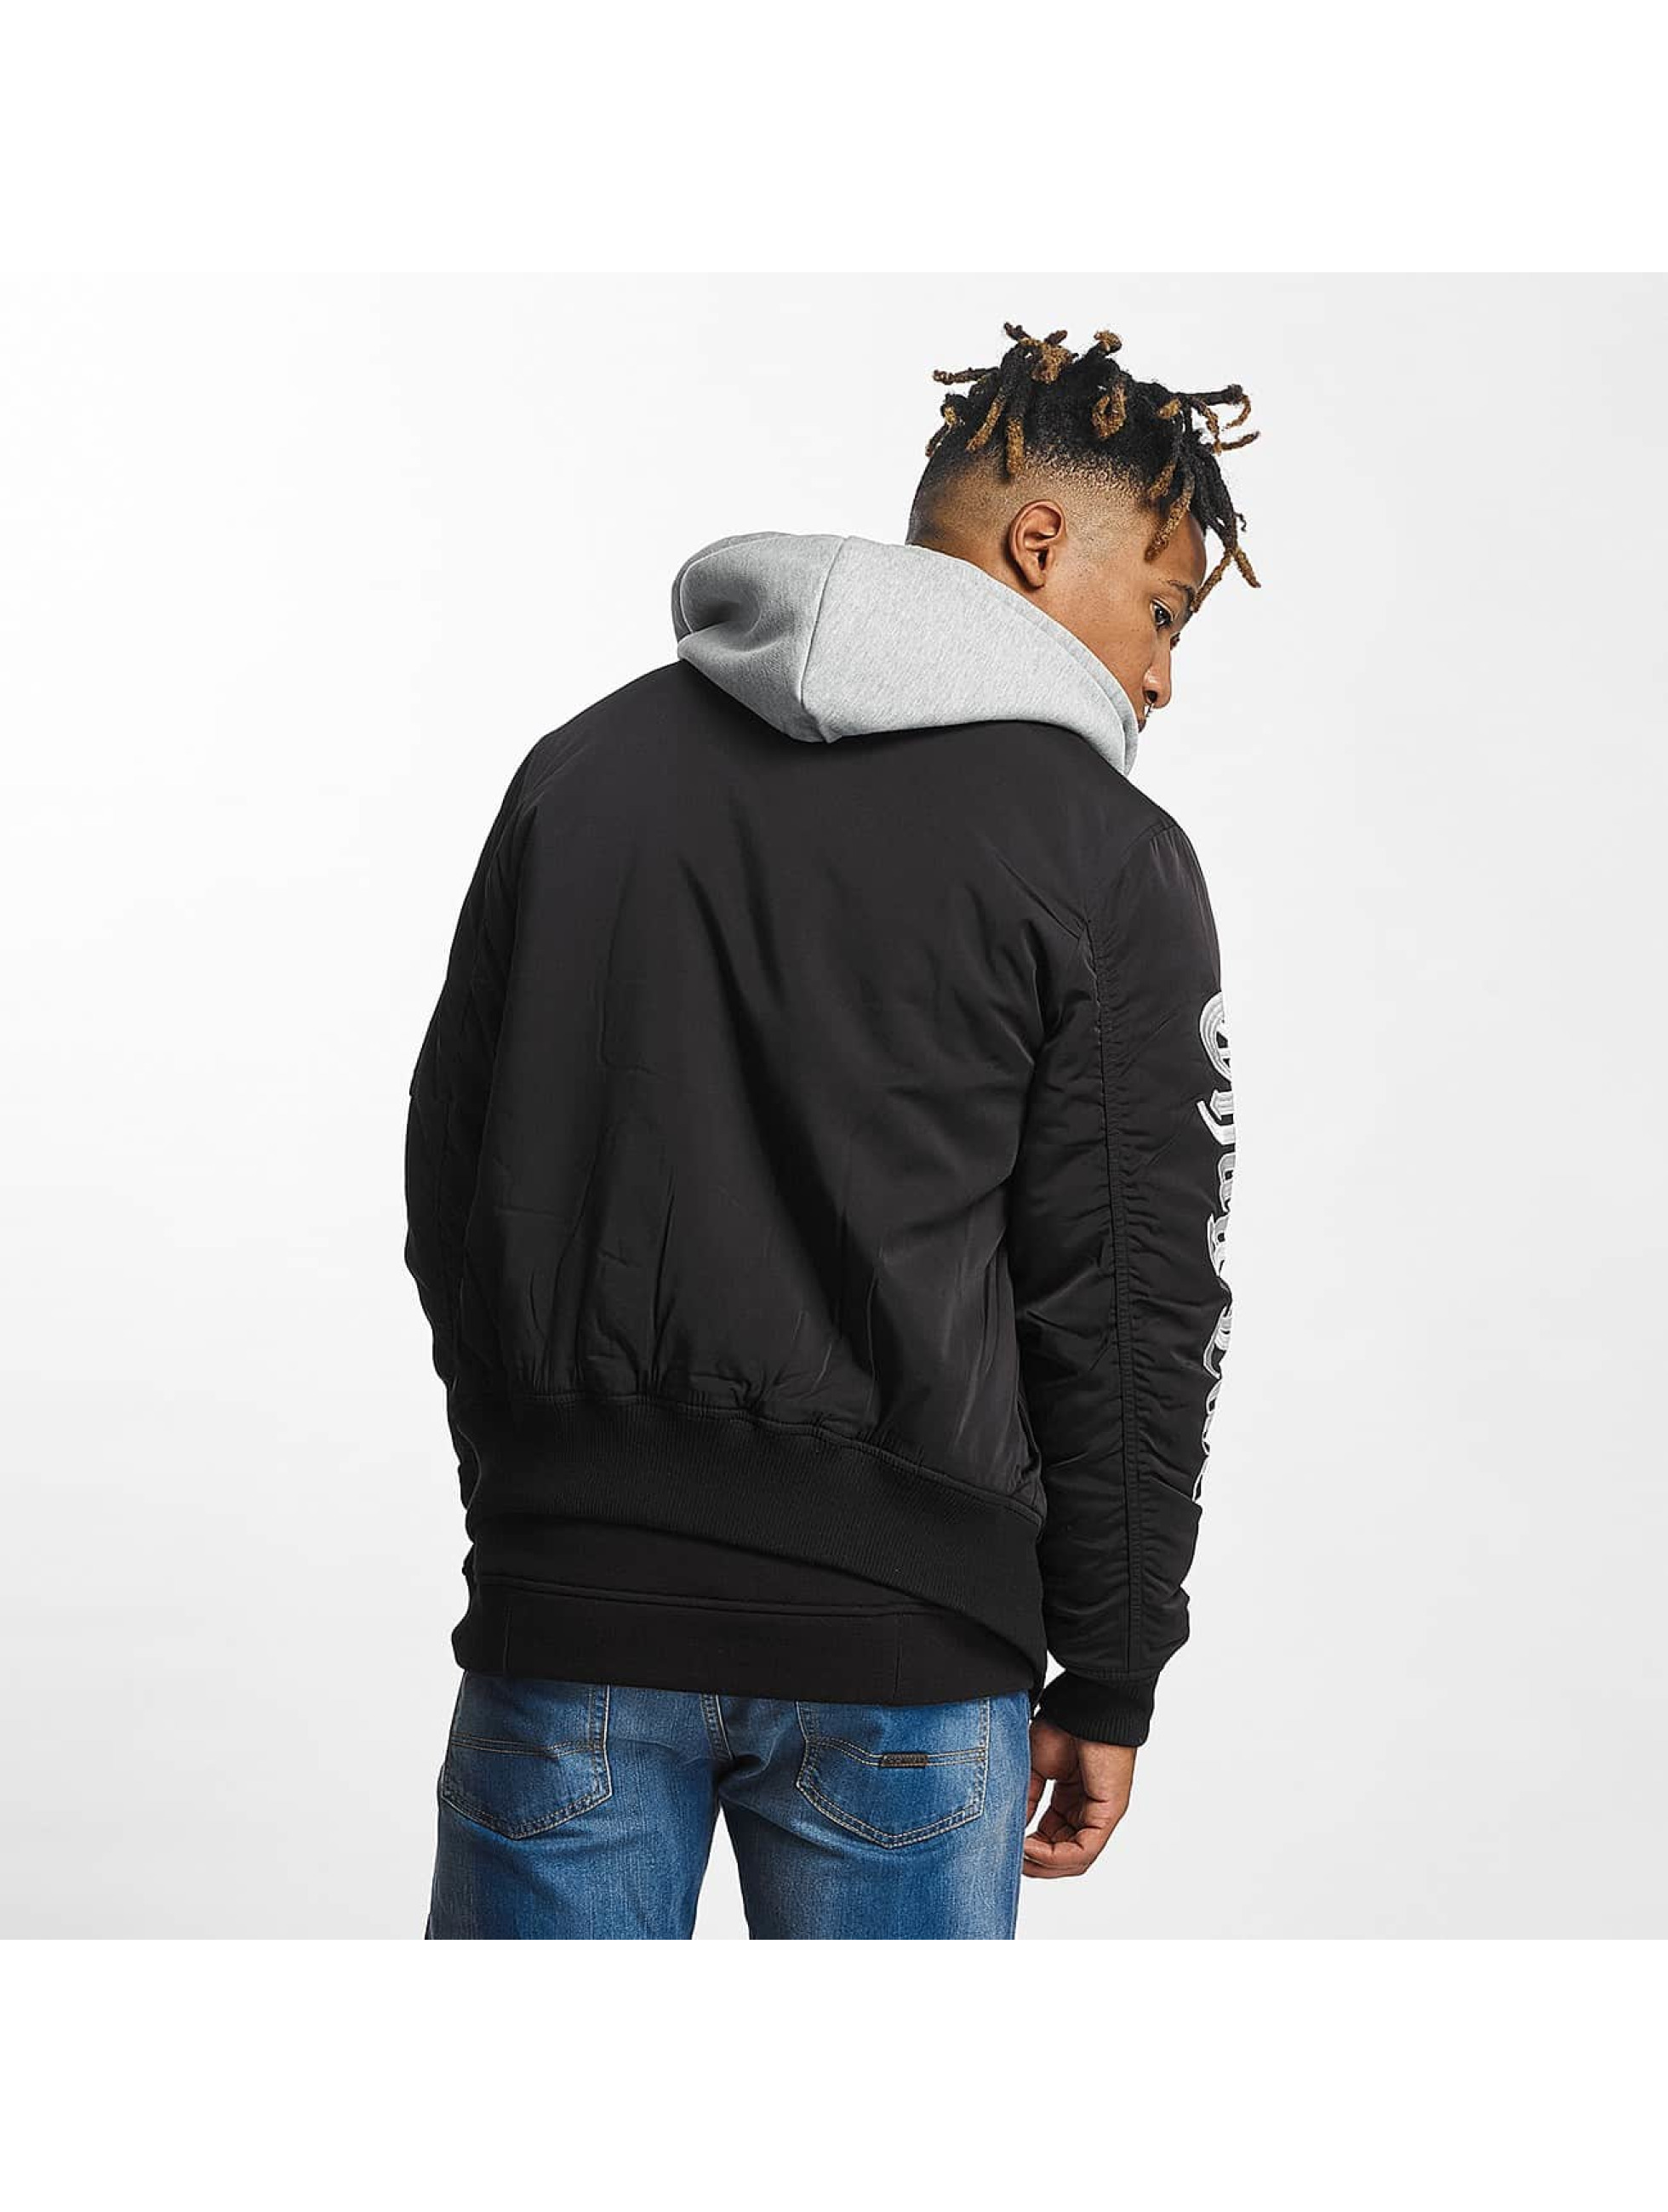 Thug Life Bomber jacket 2 in 1 black